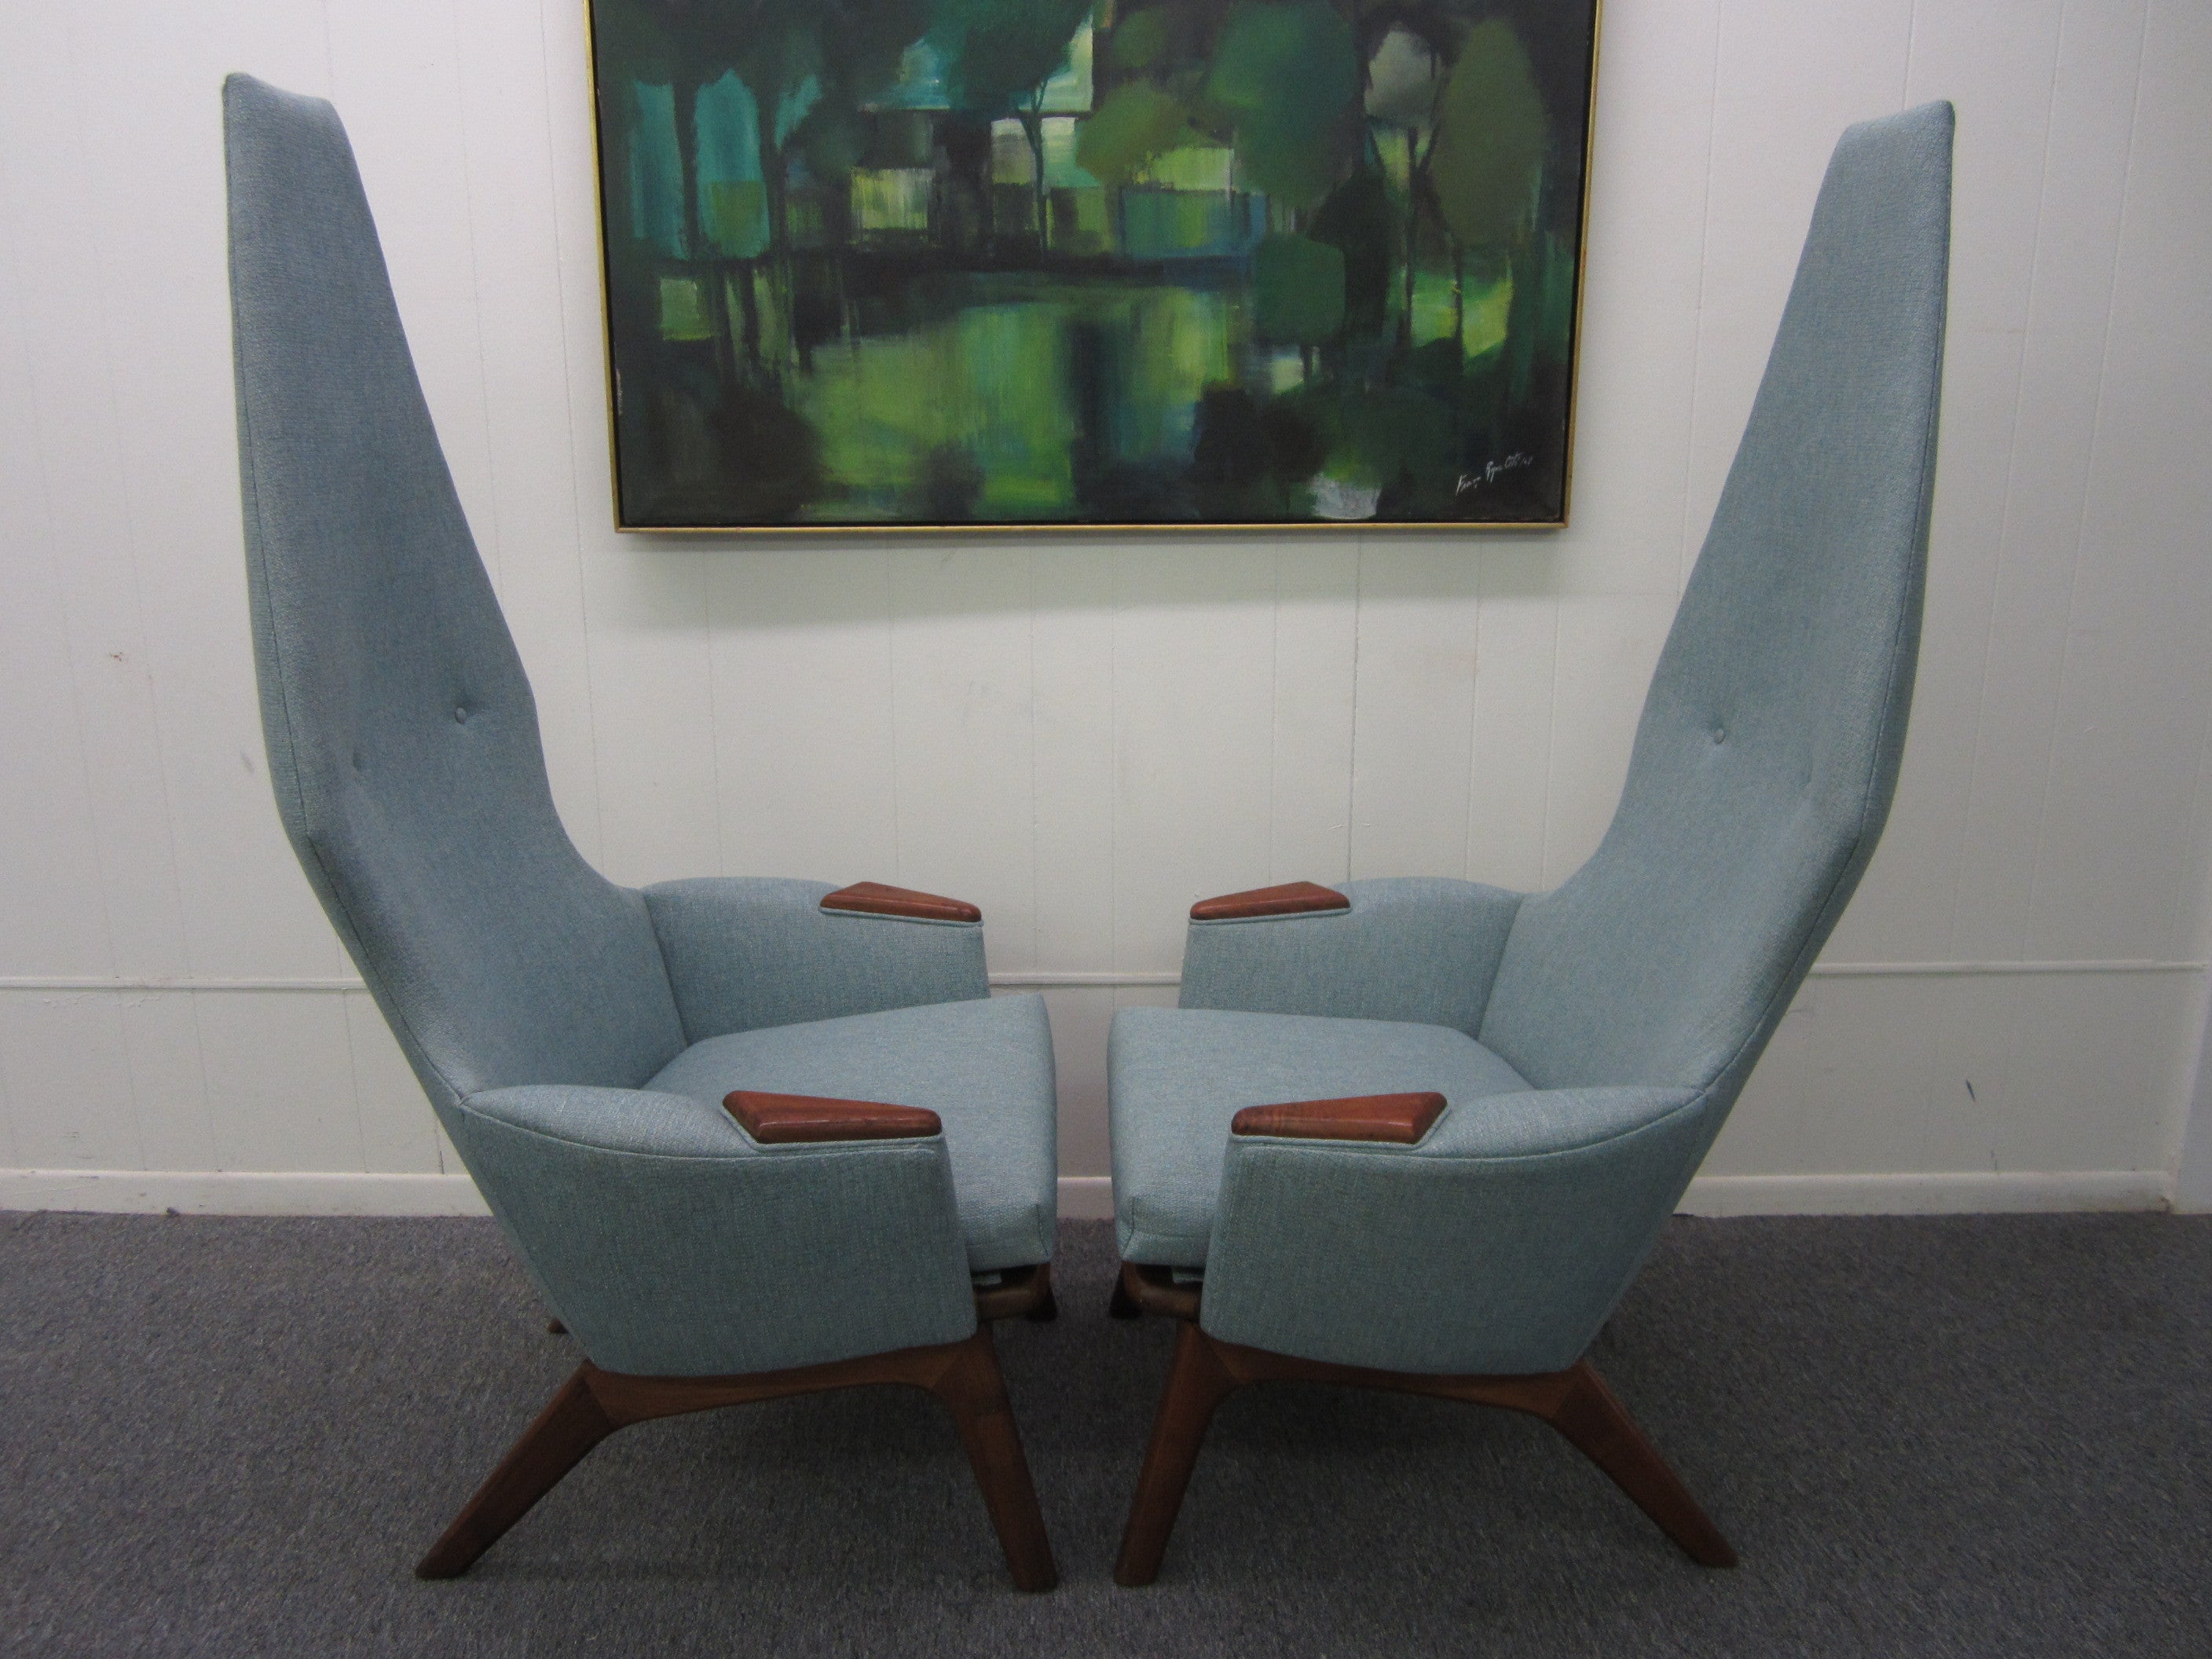 Spectacular Pair of Adrian Pearsall High Back Chairs Mid-Century Danish Modern